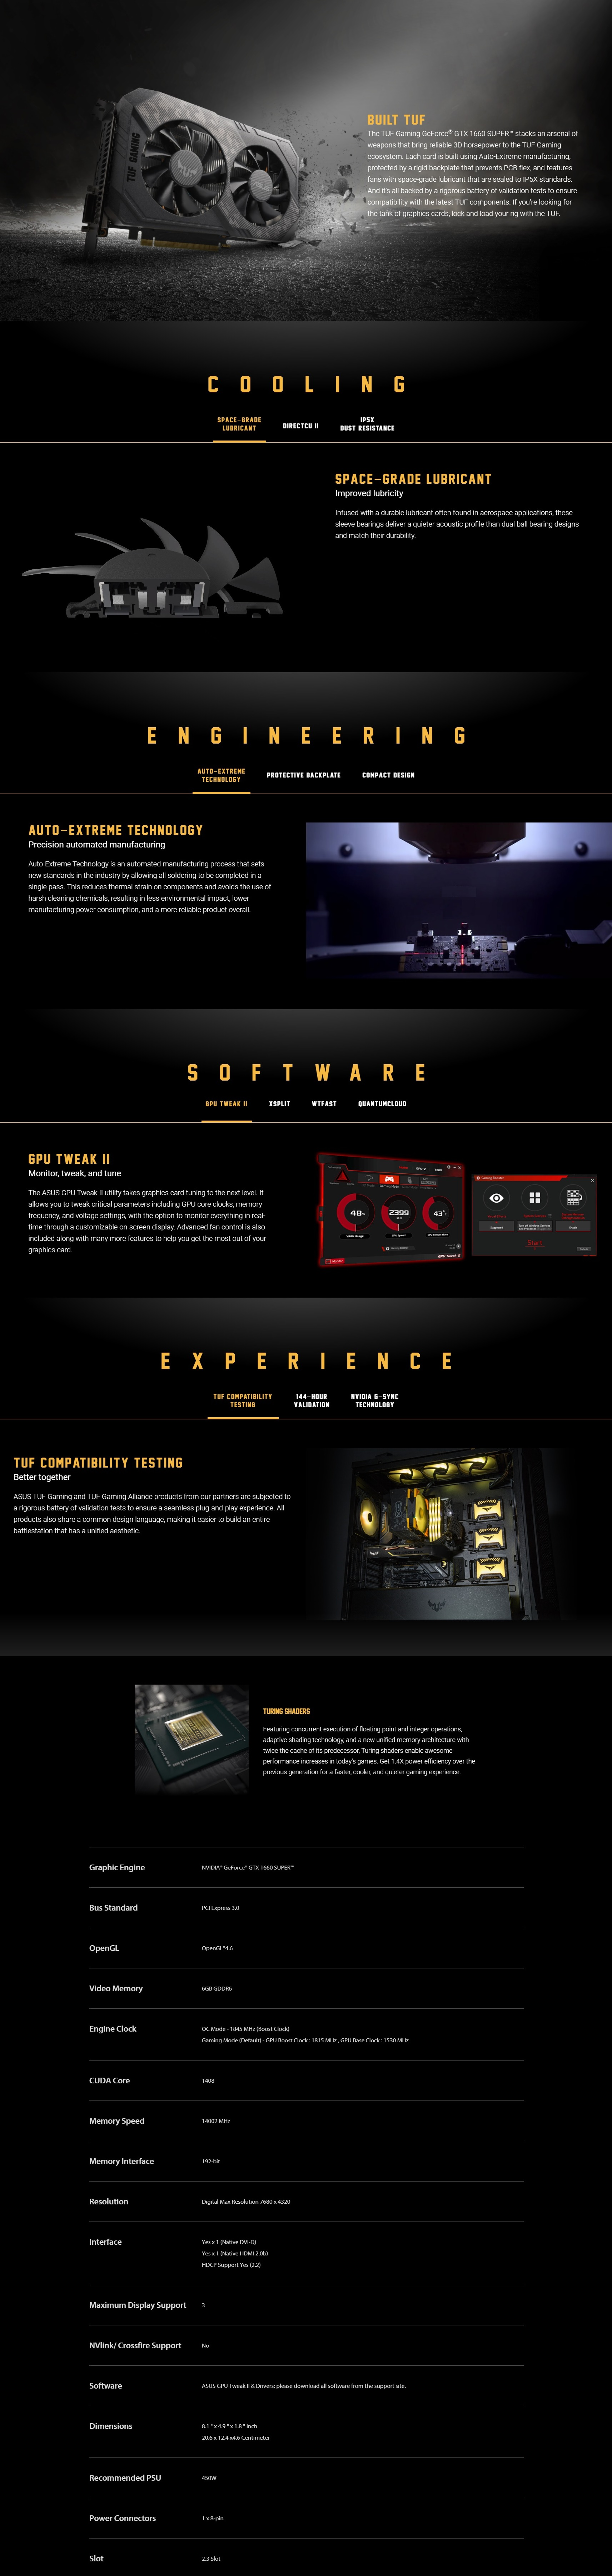 A large marketing image providing additional information about the product ASUS GeForce GTX 1660 Super TUF Gaming OC 6GB GDDR6 - Additional alt info not provided